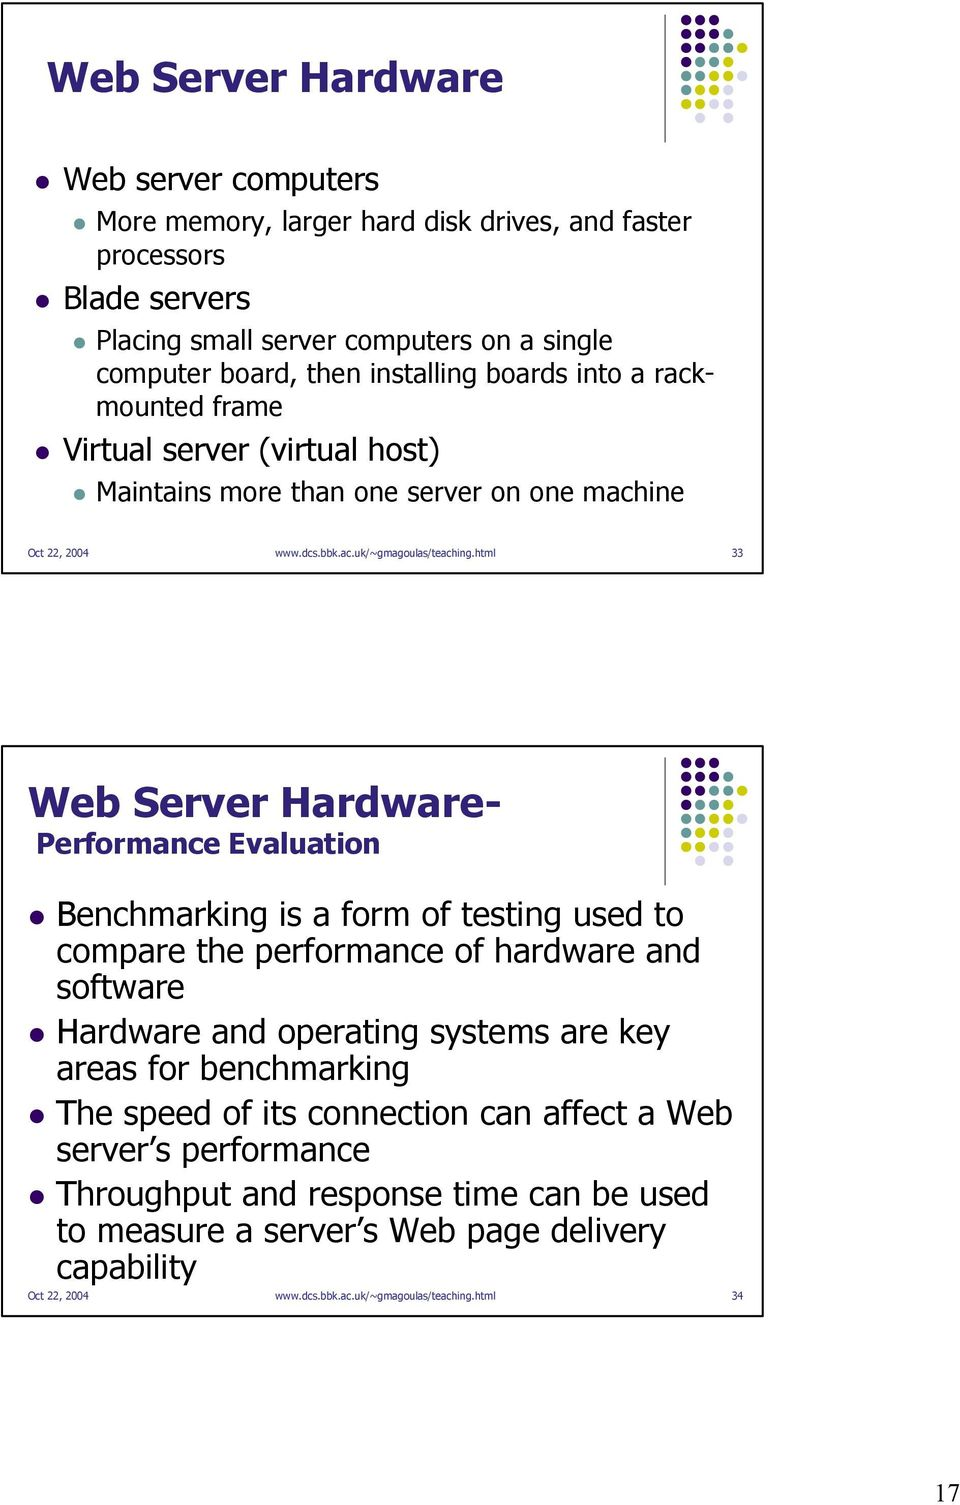 html 33 Web Server Hardware- Performance Evaluation Benchmarking is a form of testing used to compare the performance of hardware and software Hardware and operating systems are key areas for